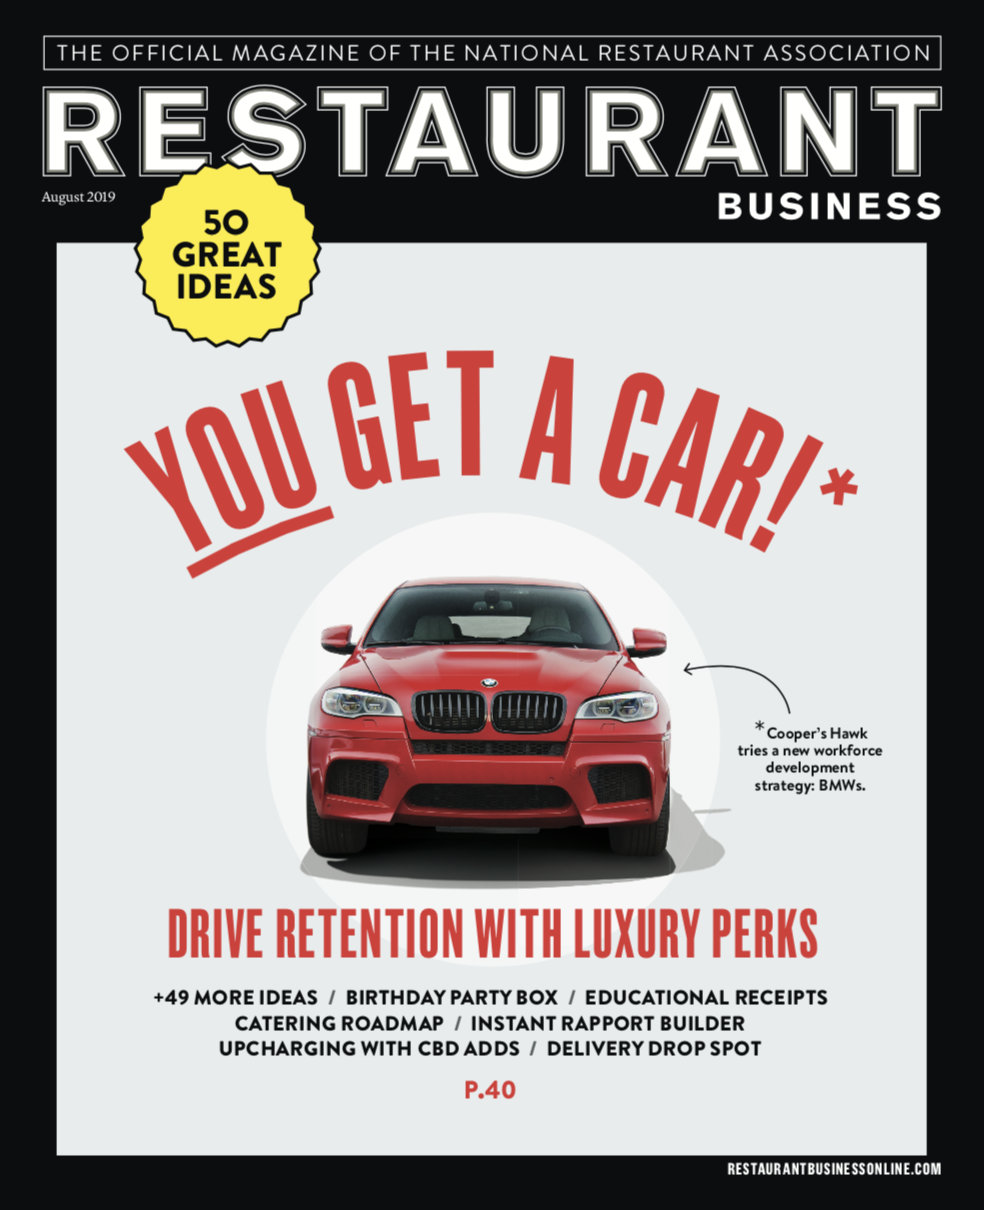 Restaurant Business Magazine August 2019 Issue